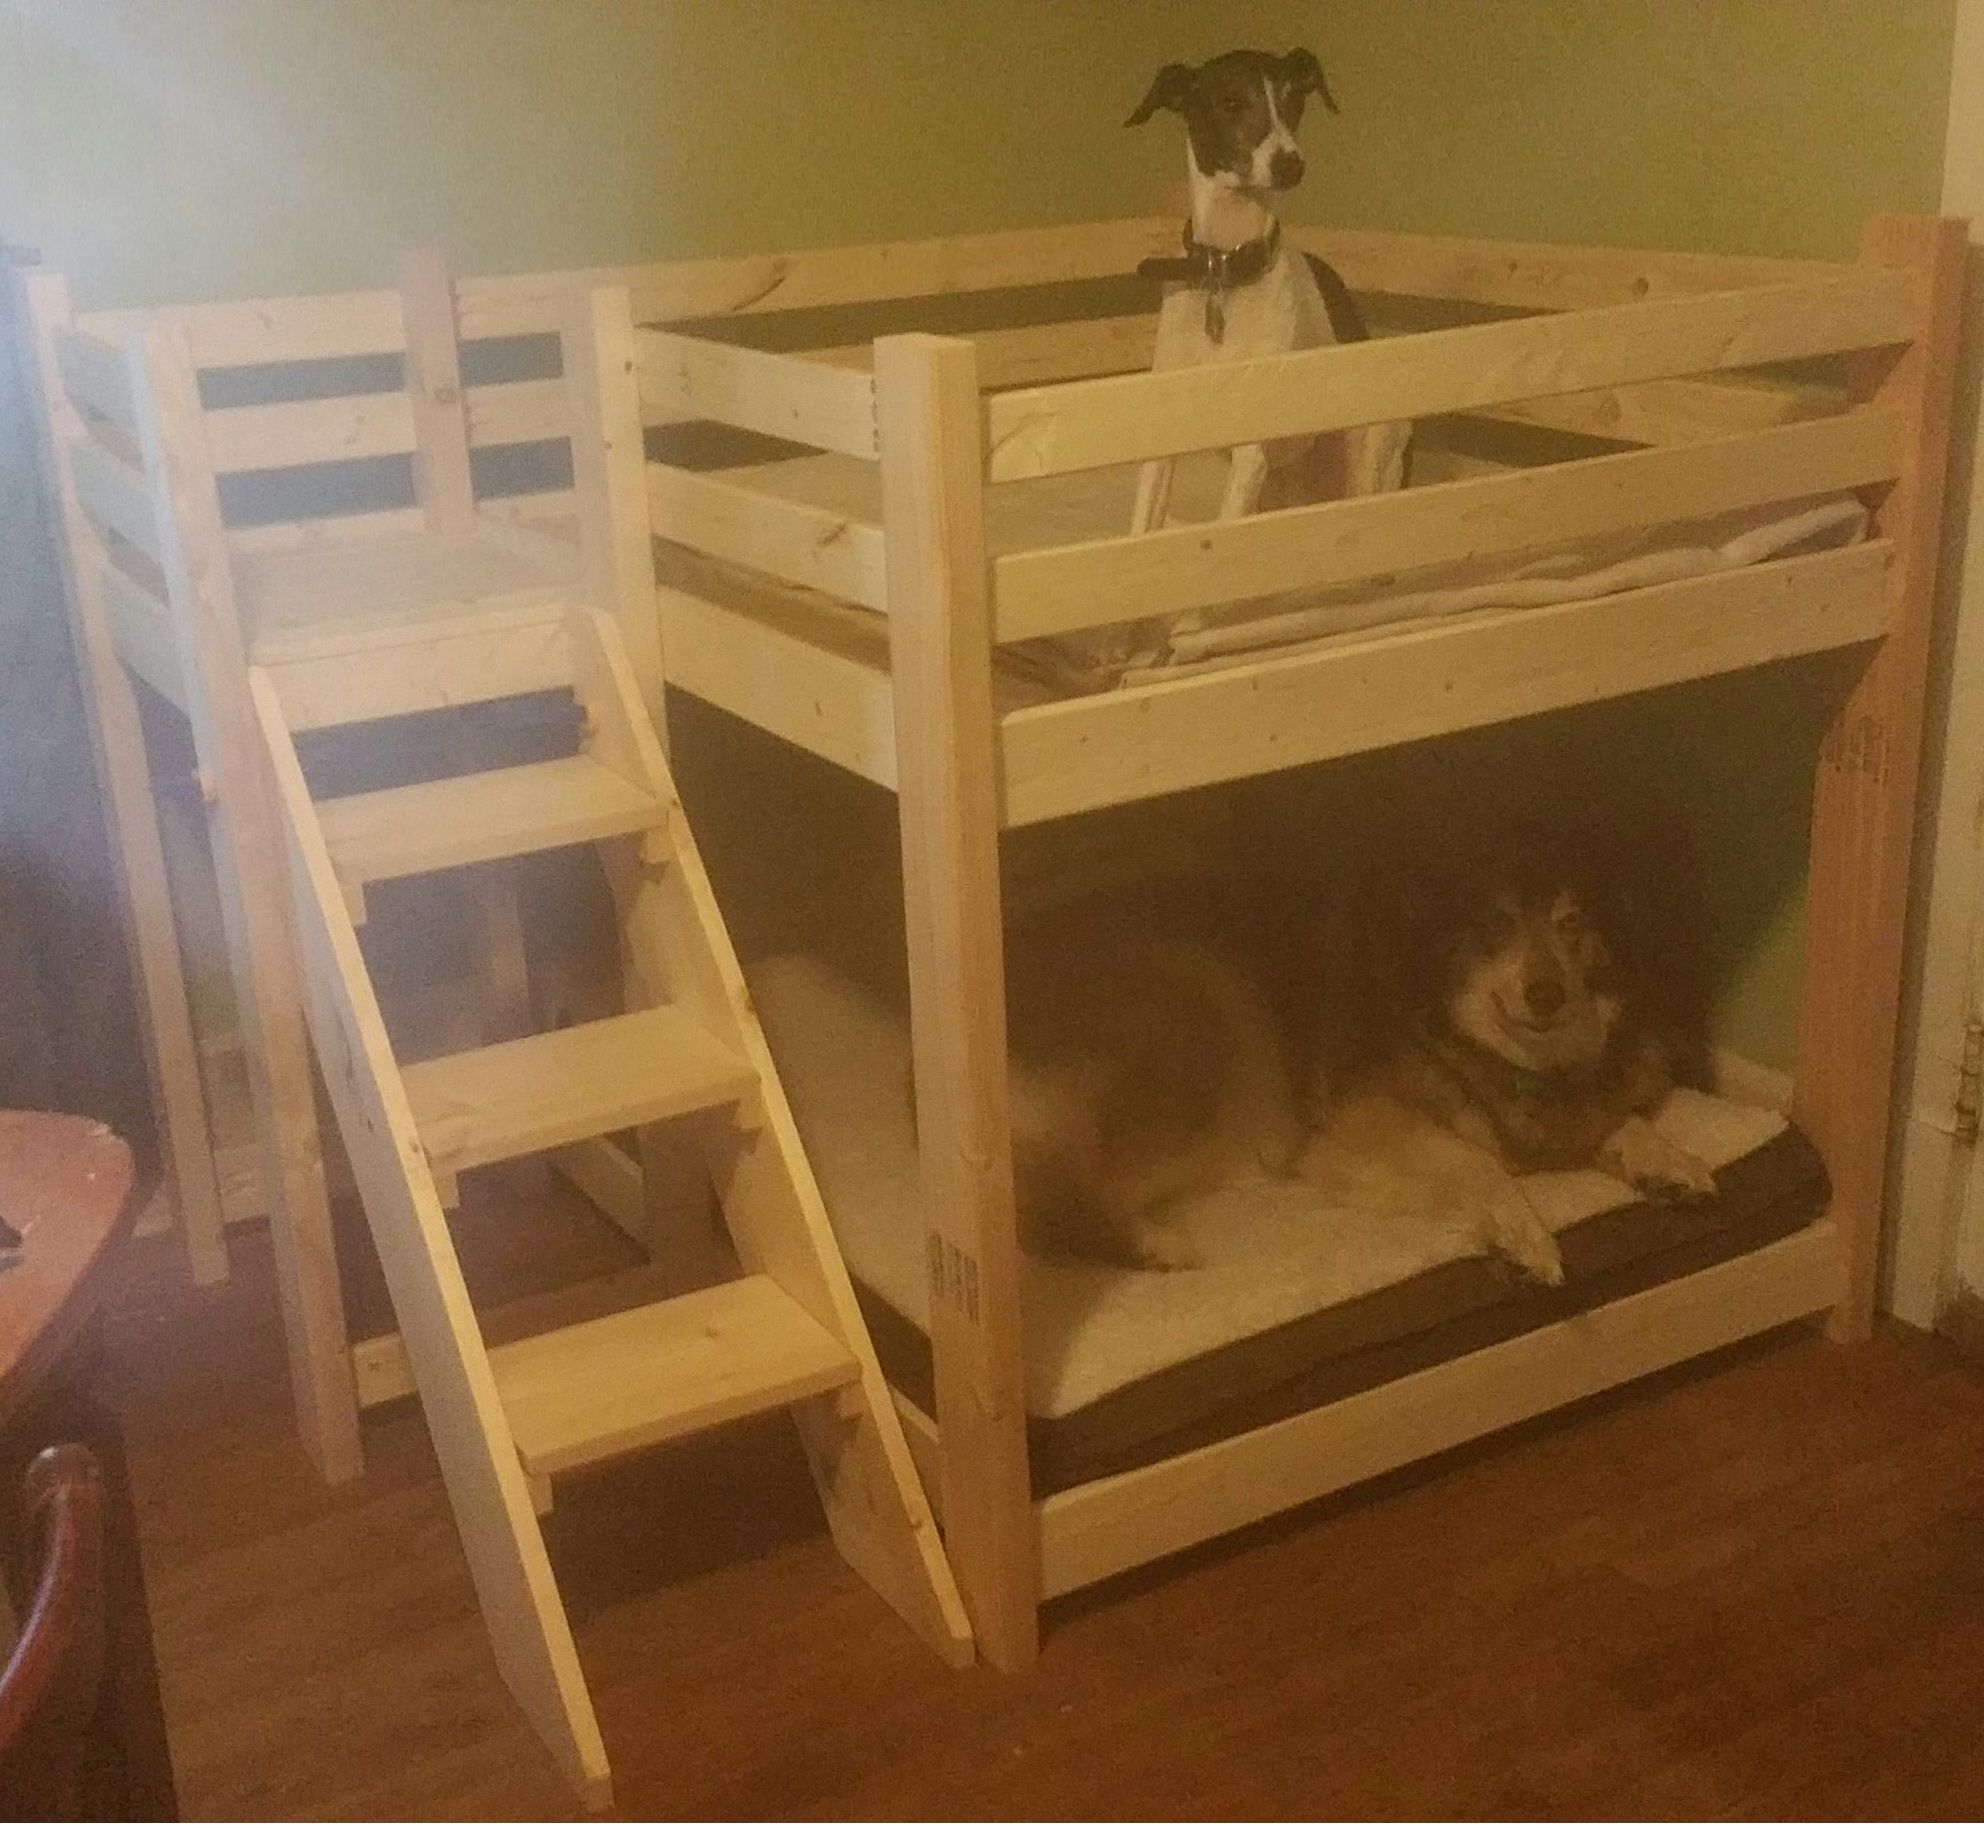 Dog Bunk Bed Do It Yourself Home Projects from Ana White